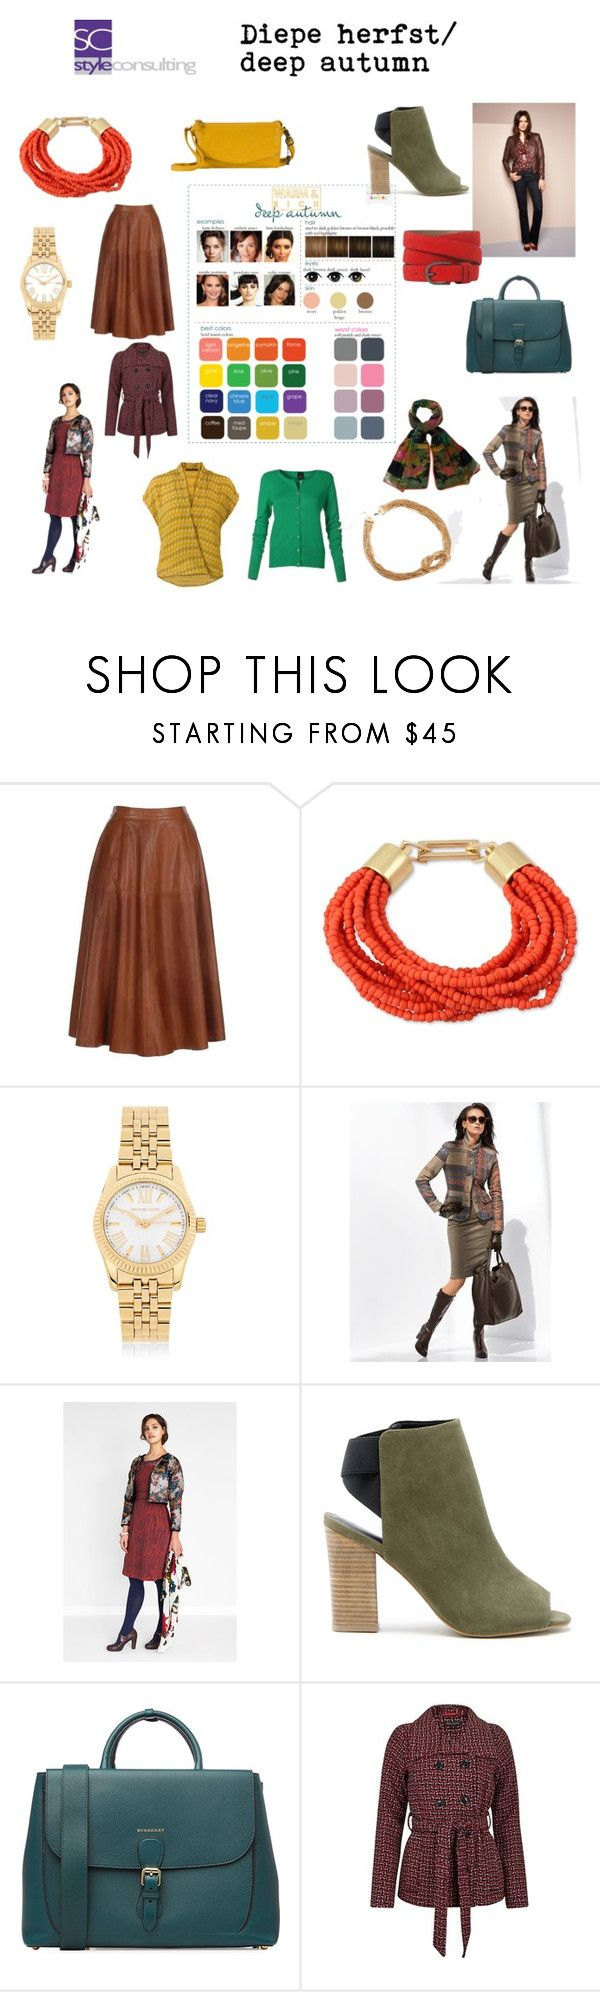 """Diepe herfst/ Deep autumn color type"" by roorda ❤ liked on Polyvore featuring Kenneth Cole, Michael Kors, Jennifer Lopez, Sole Society and Burberry"